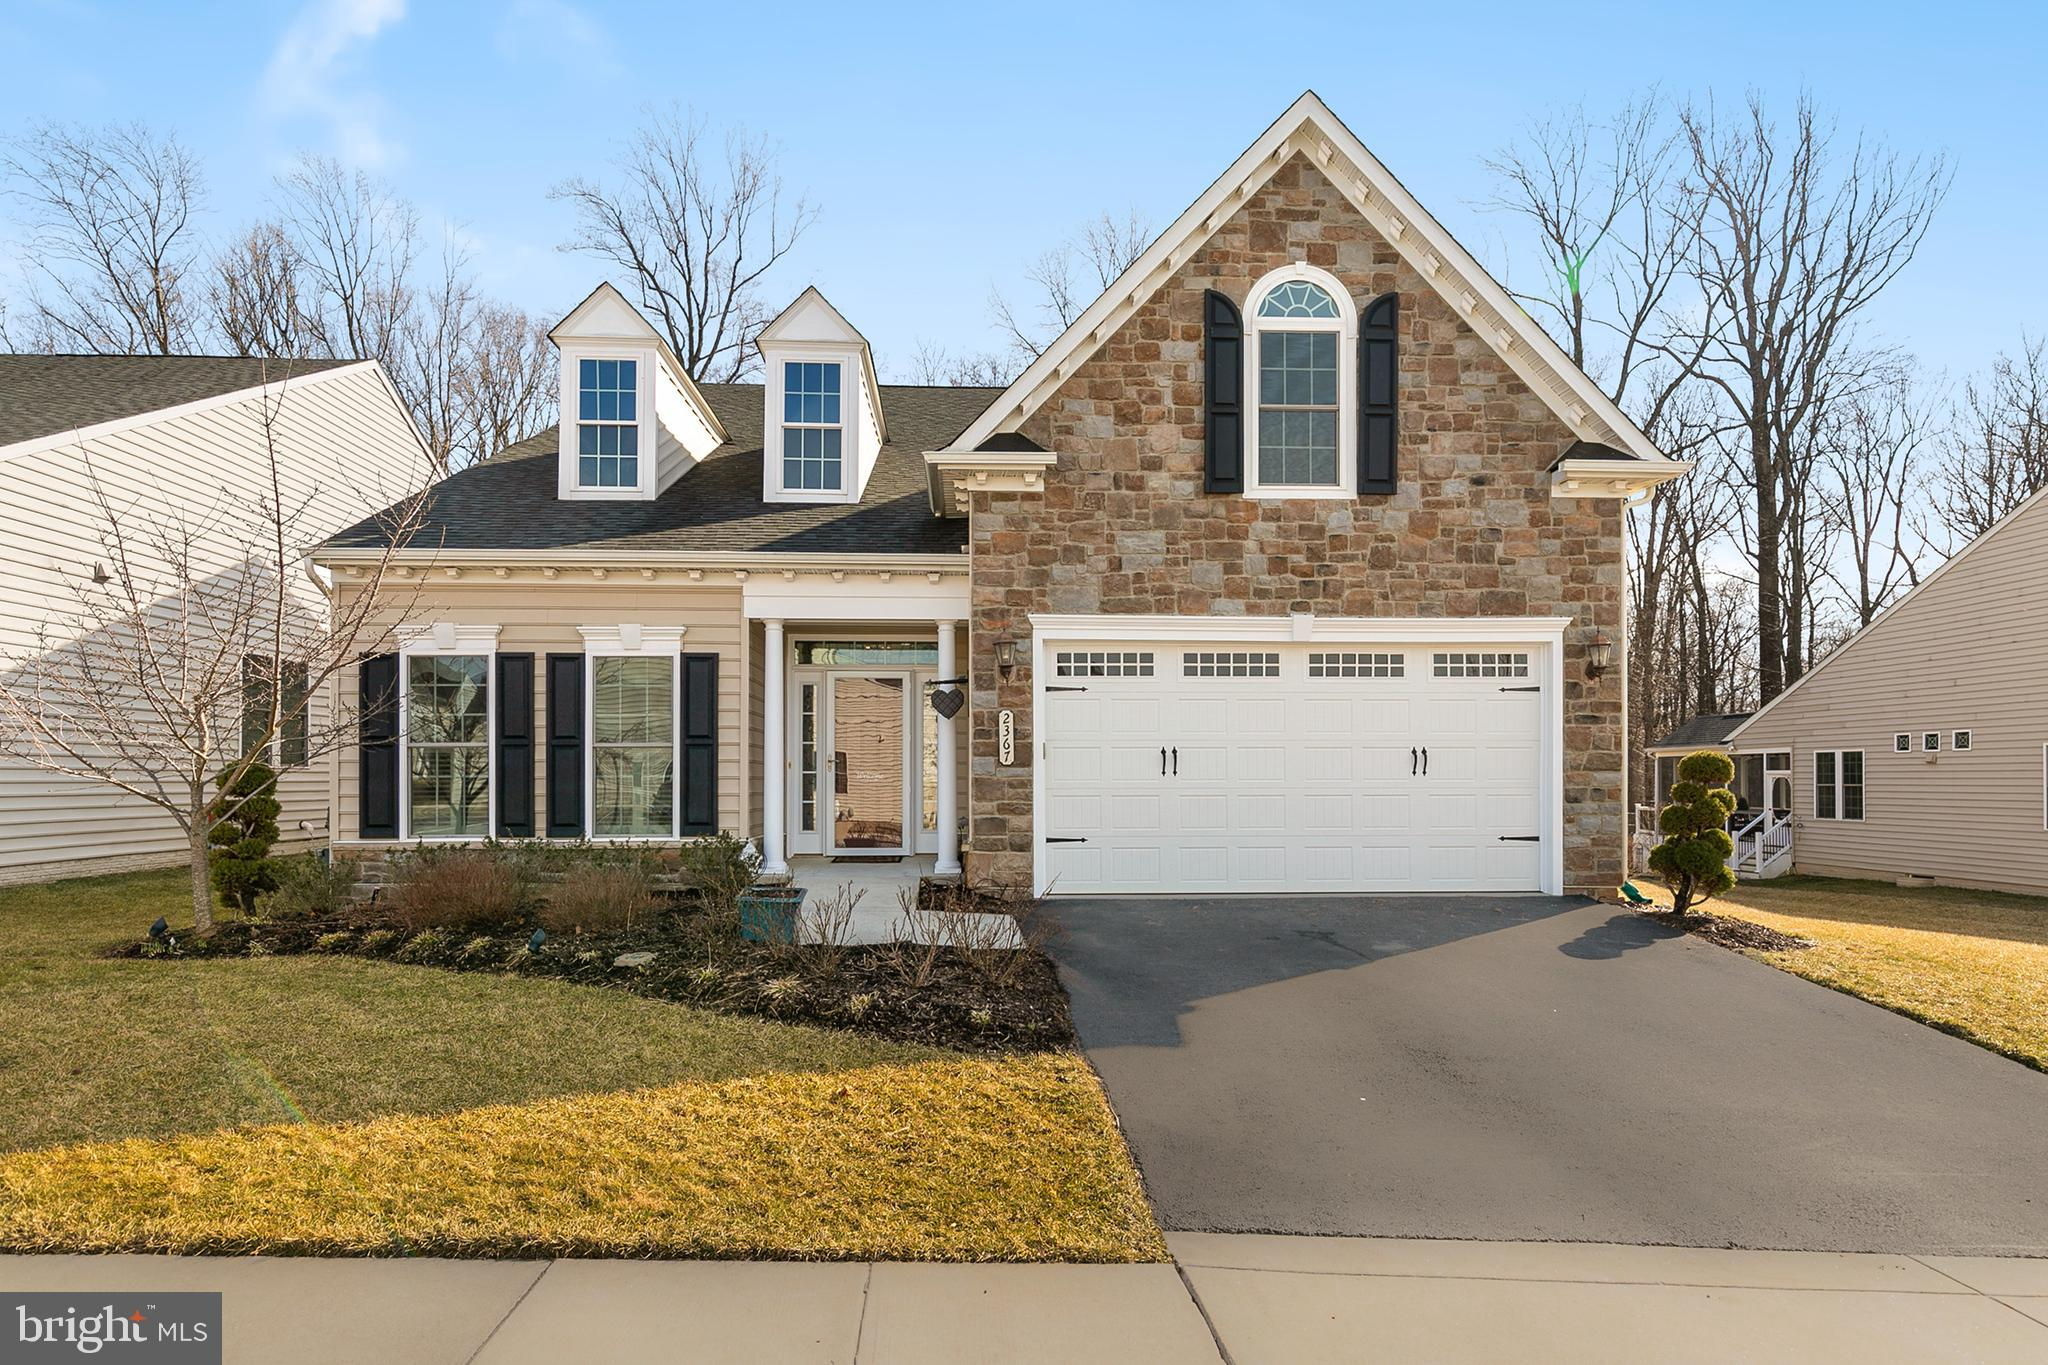 2367 ANDERSON HILL STREET, MARRIOTTSVILLE, MD 21104